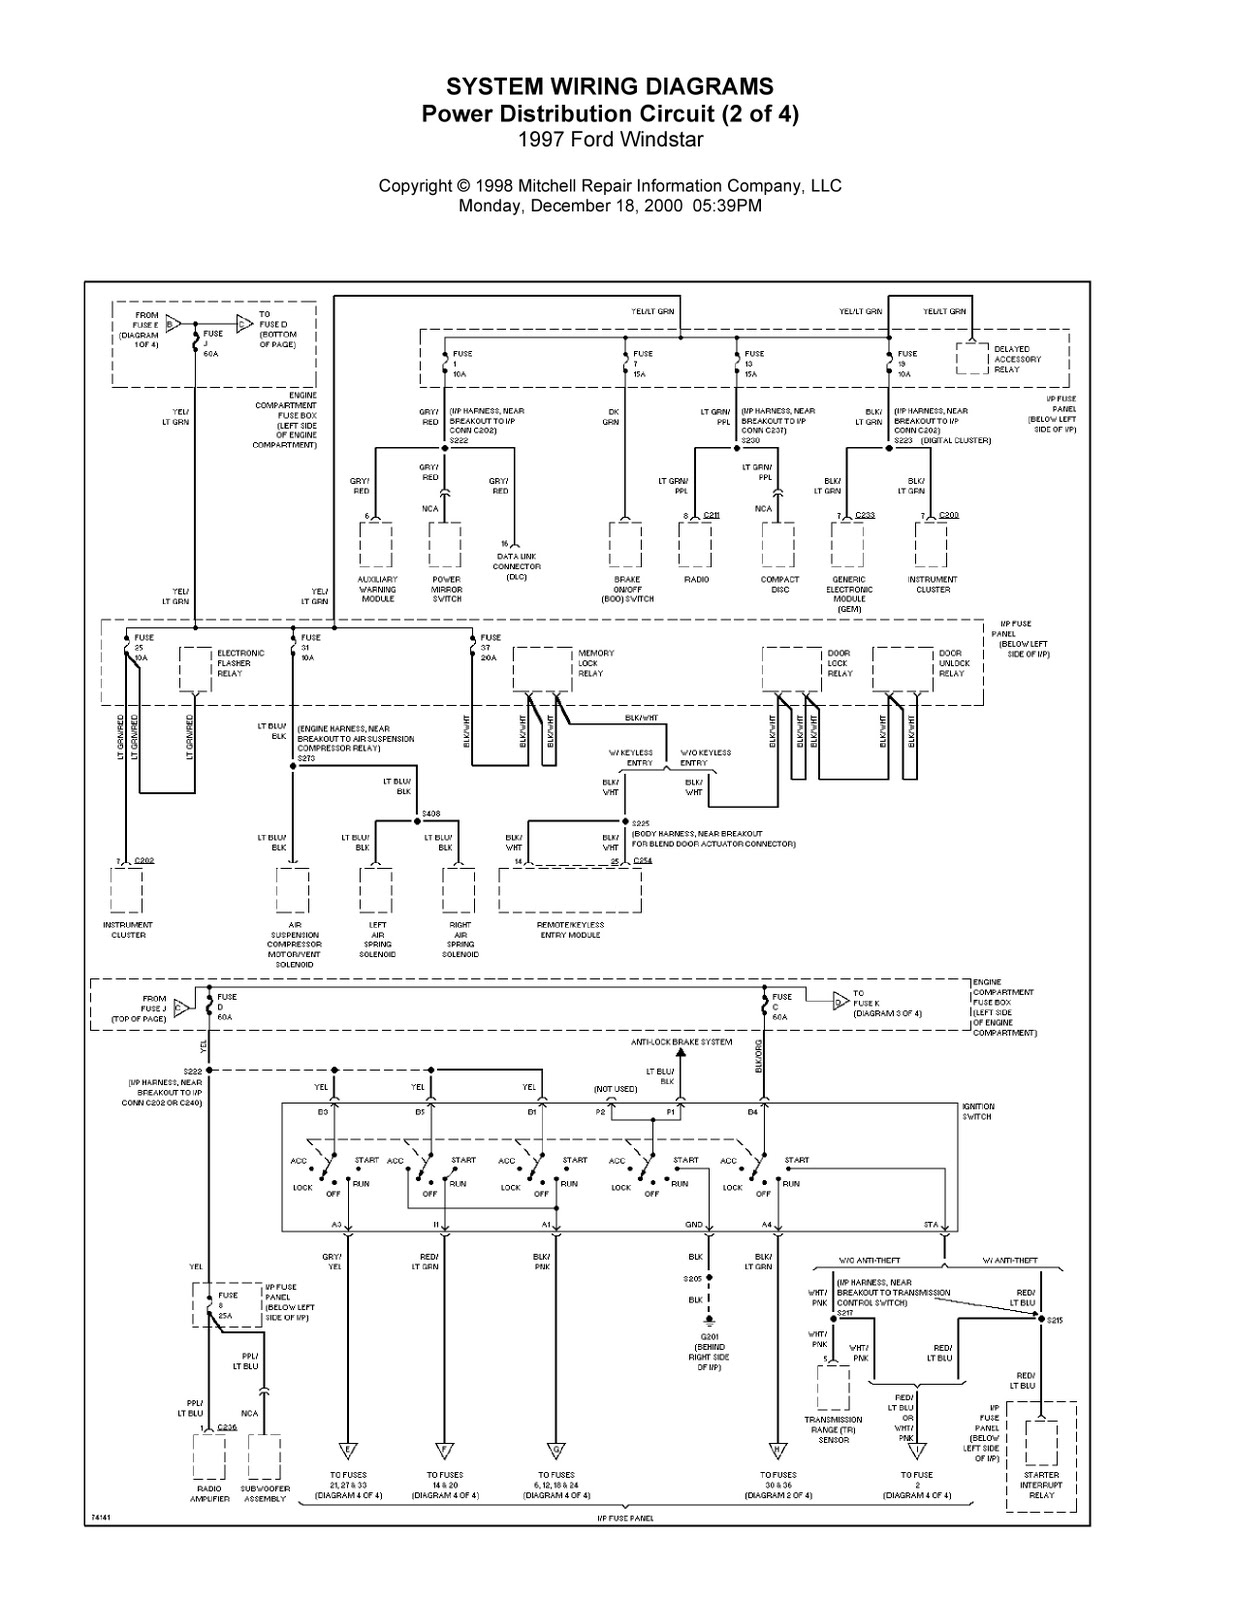 1997 ford windstar complete system wiring diagrams ford windstar wiring schematic [ 1236 x 1600 Pixel ]